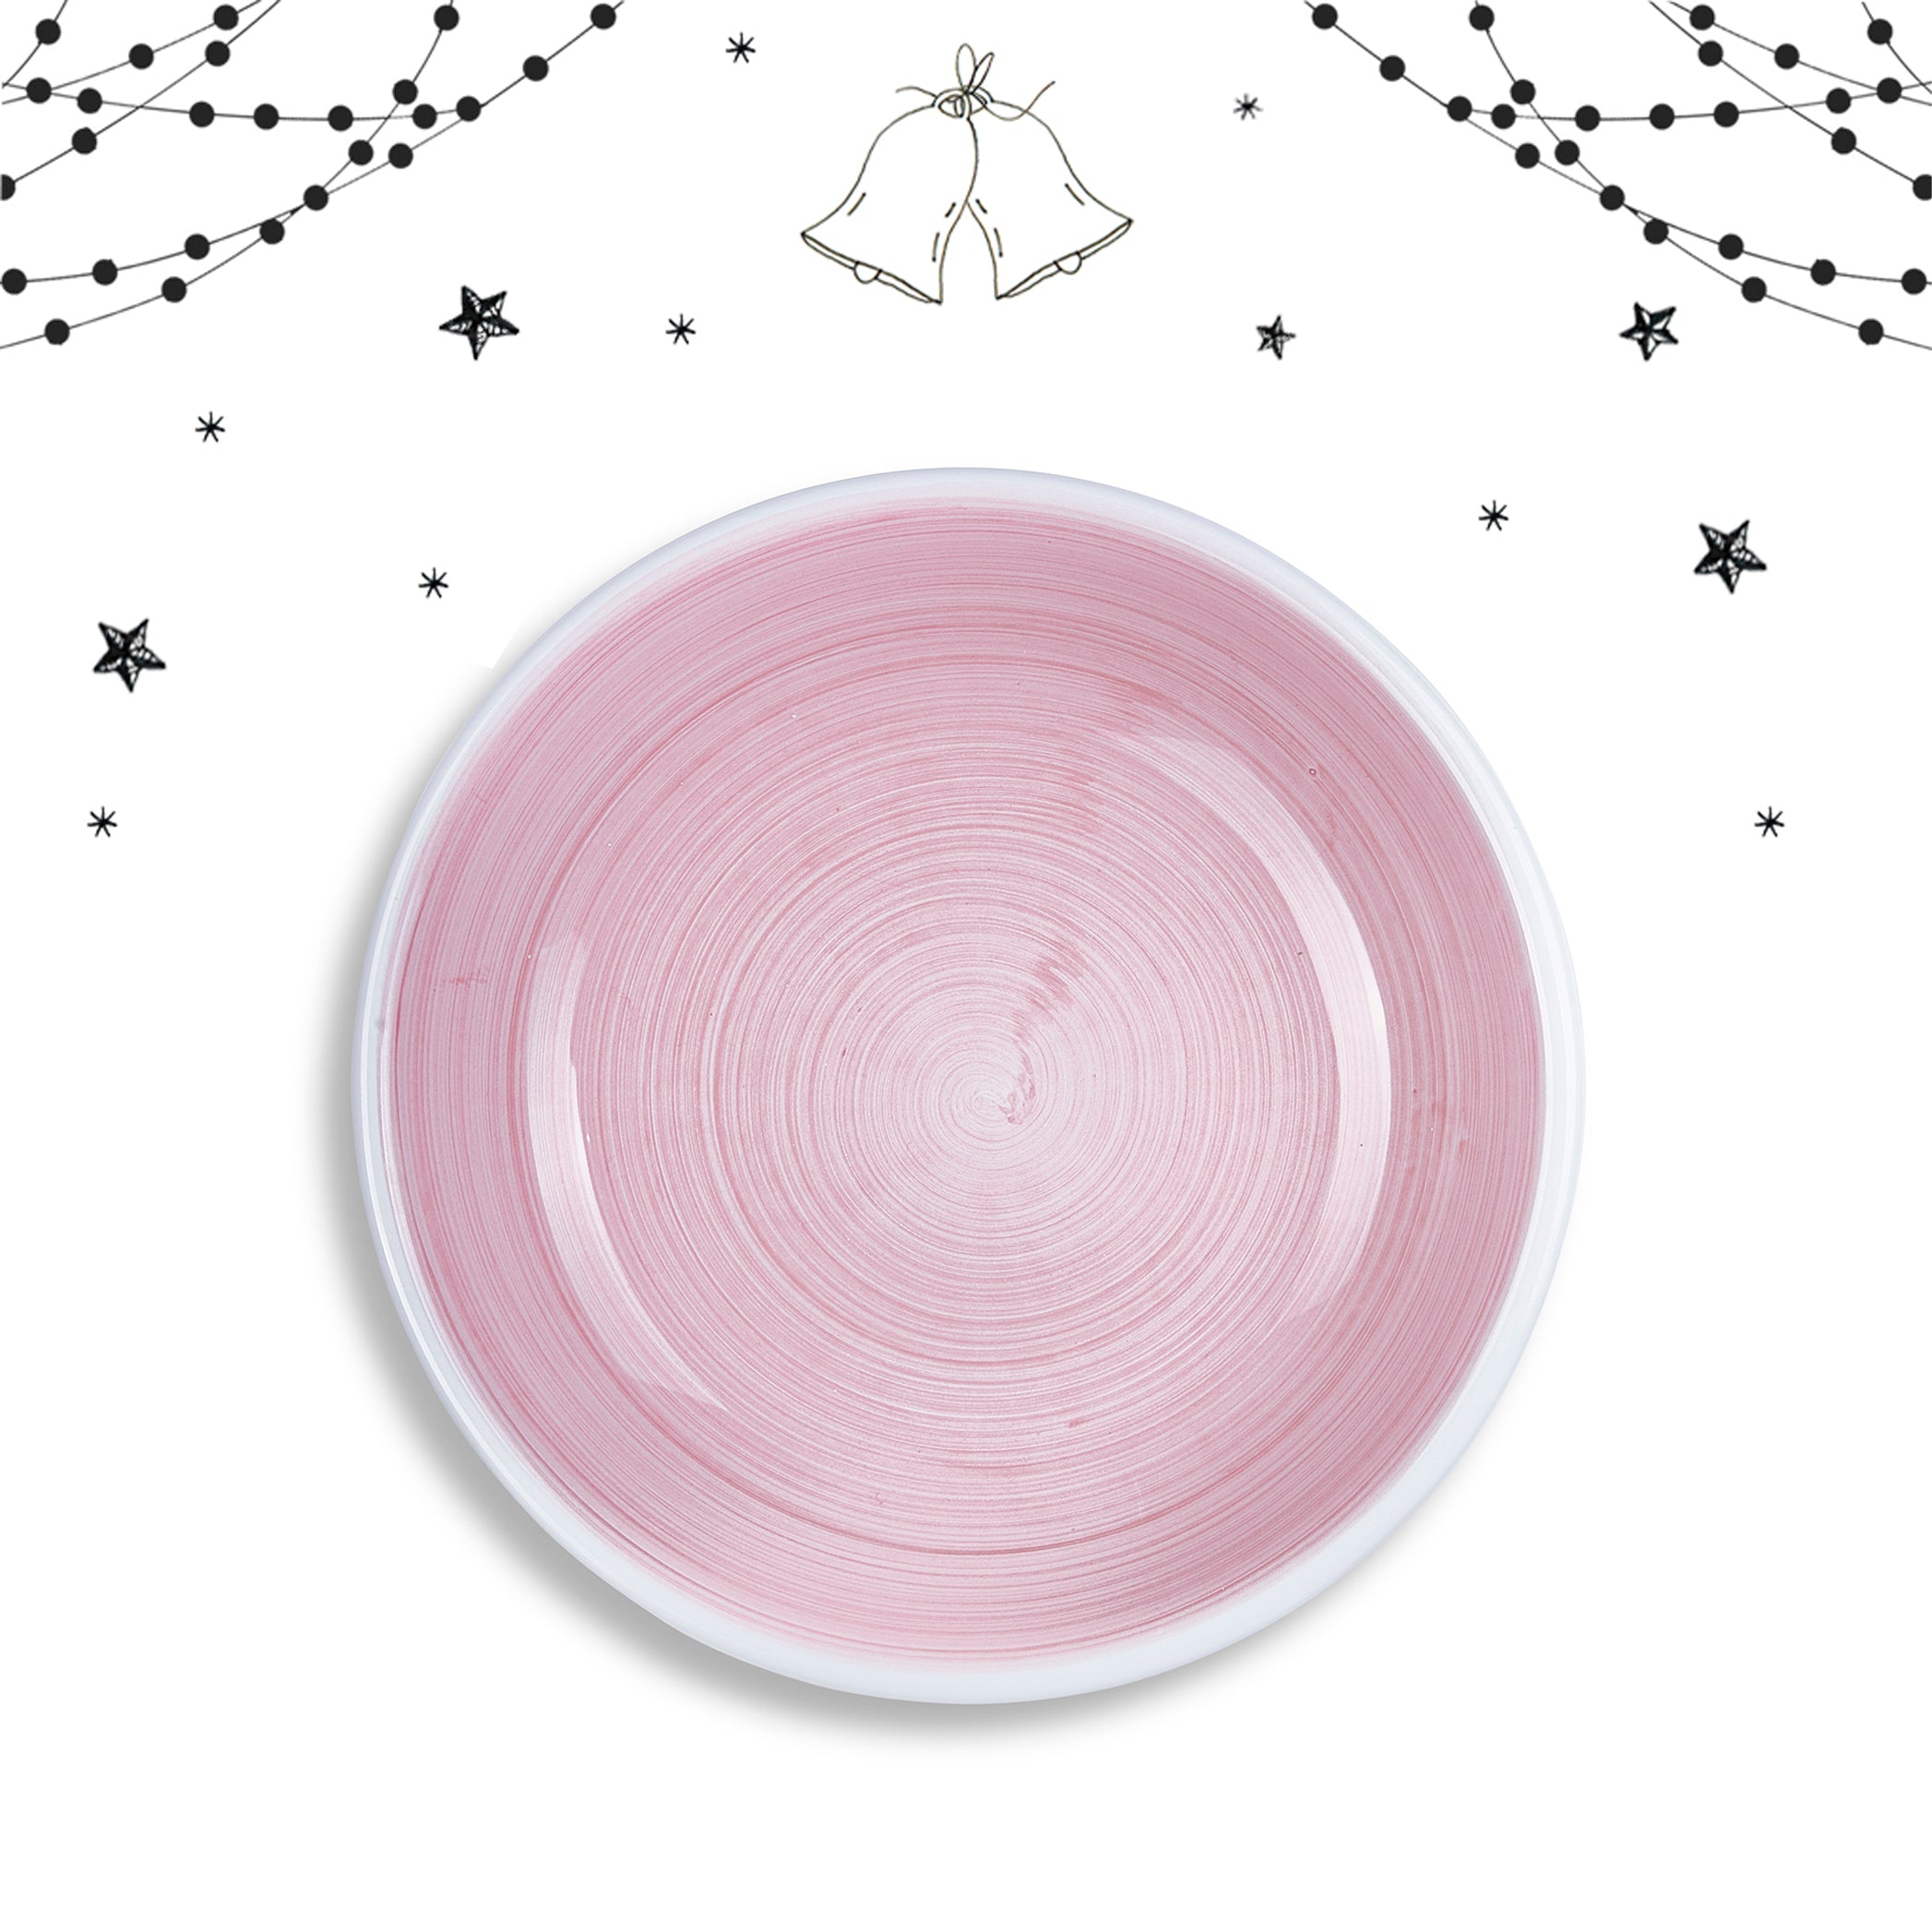 S&B 'Brushed' Ceramic Pasta Bowl in Pastel Pink, 22cm